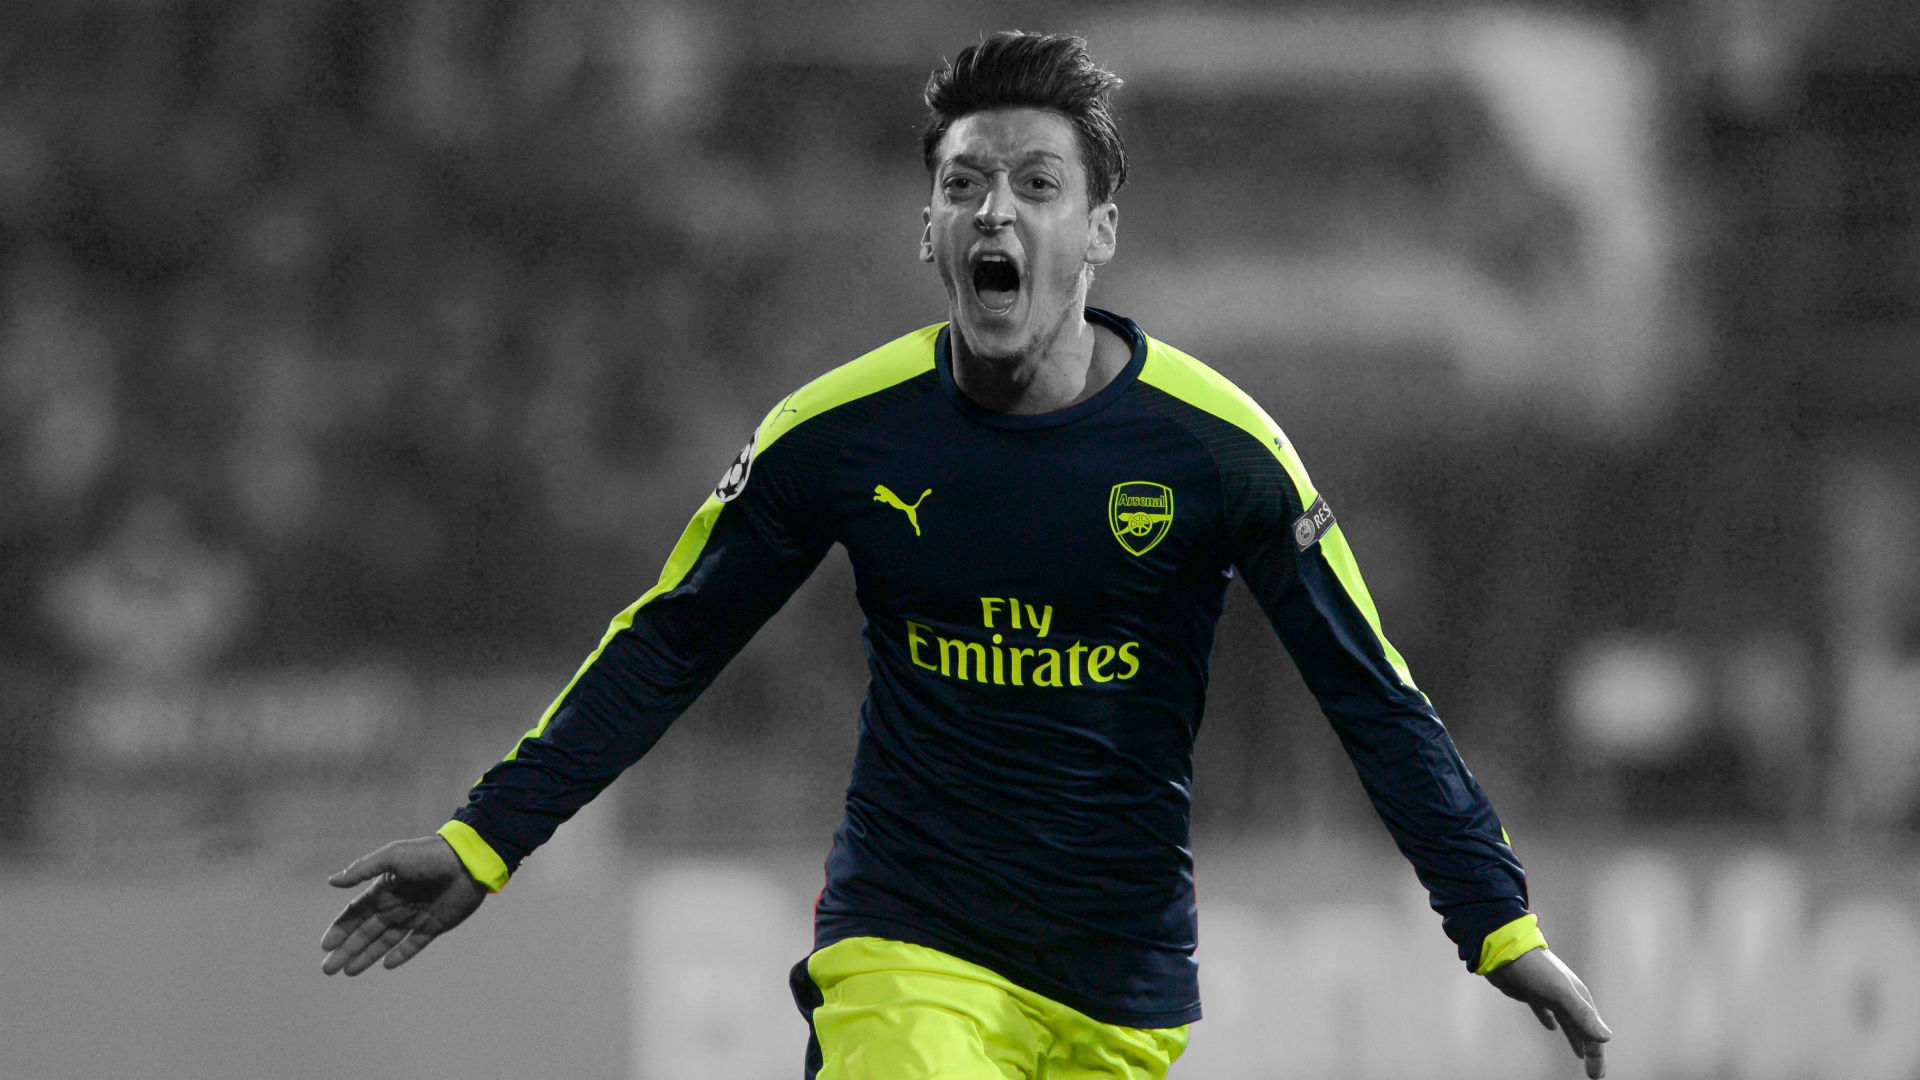 'At The End Of The Season We'll See' – Ozil Opens Up On Arsenal Future